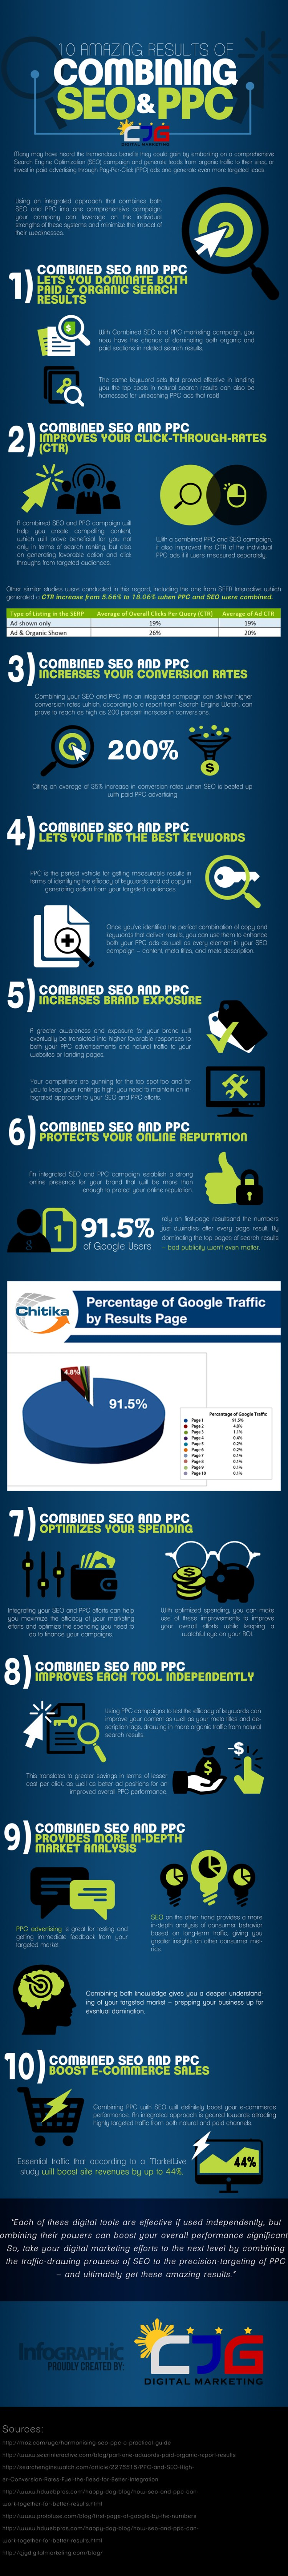 10-Amazing-Results-of-Combining-SEO-AND-PPC